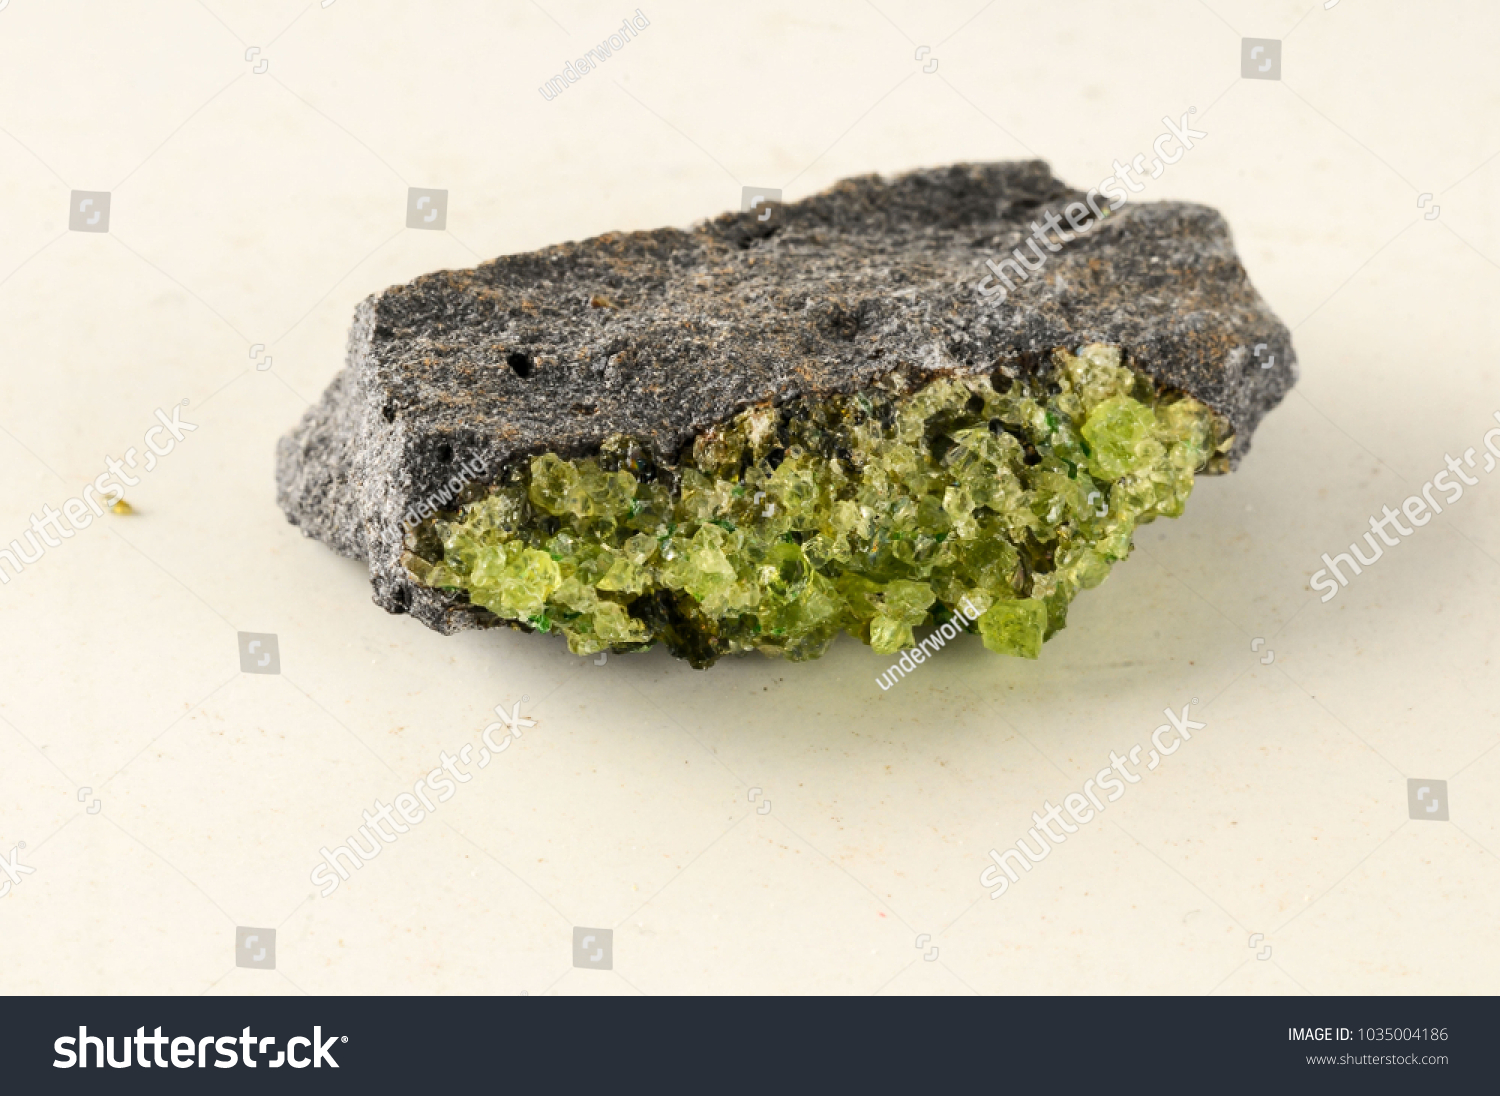 basalt much gemstone aggregates john peridot covered of new the is england australia glen flows and innes nsw by gemstones minerals blog however time olivine crystals to s from country higher other host